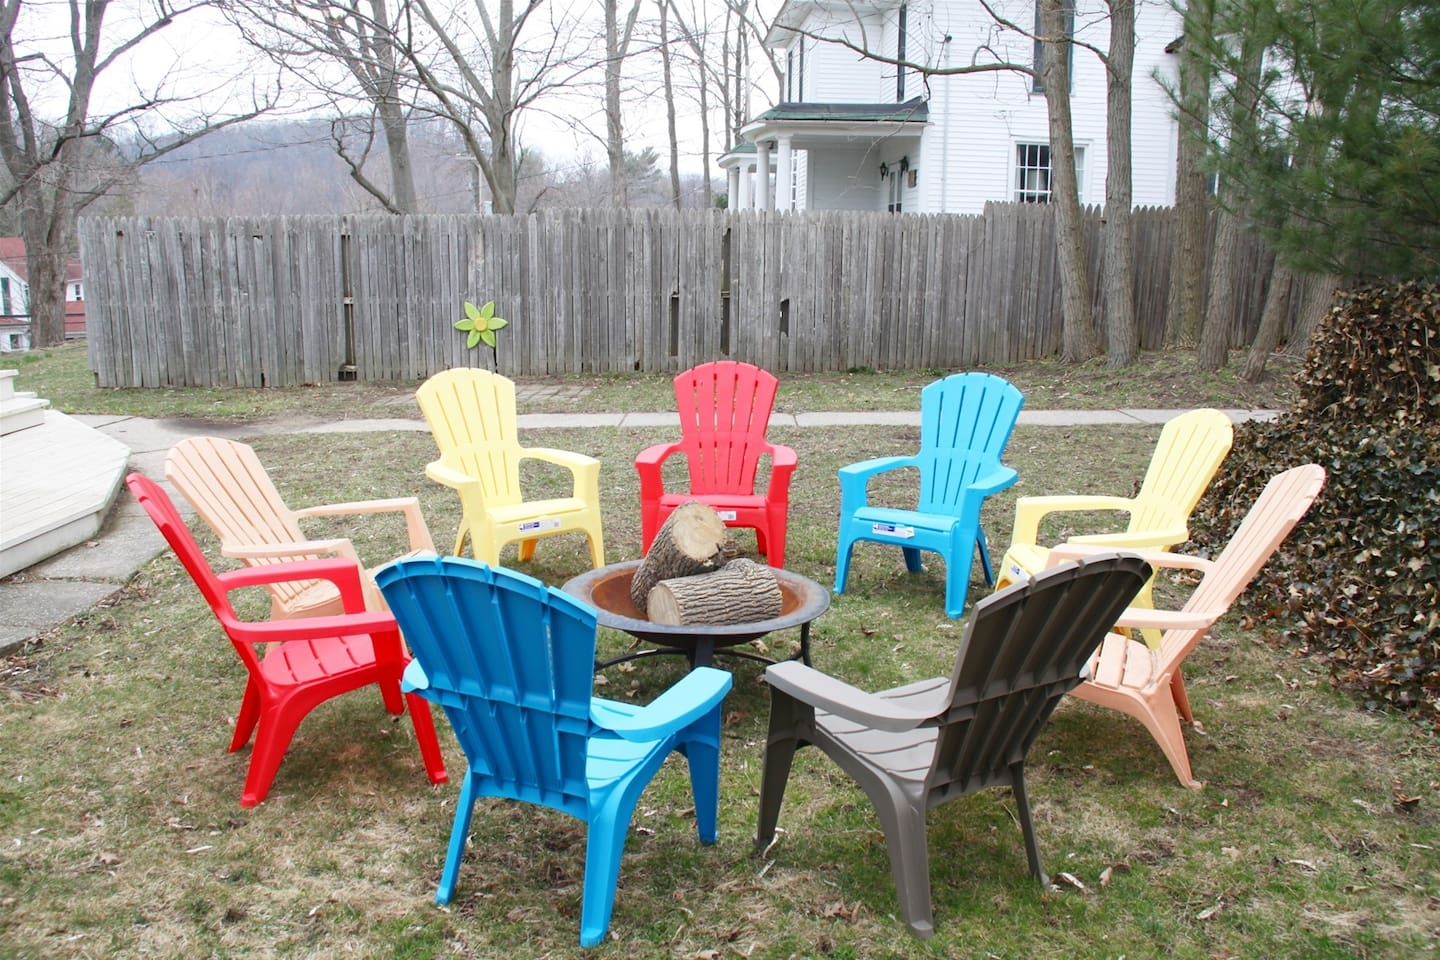 Fire pit with fun chairs to hang out and make s`mores